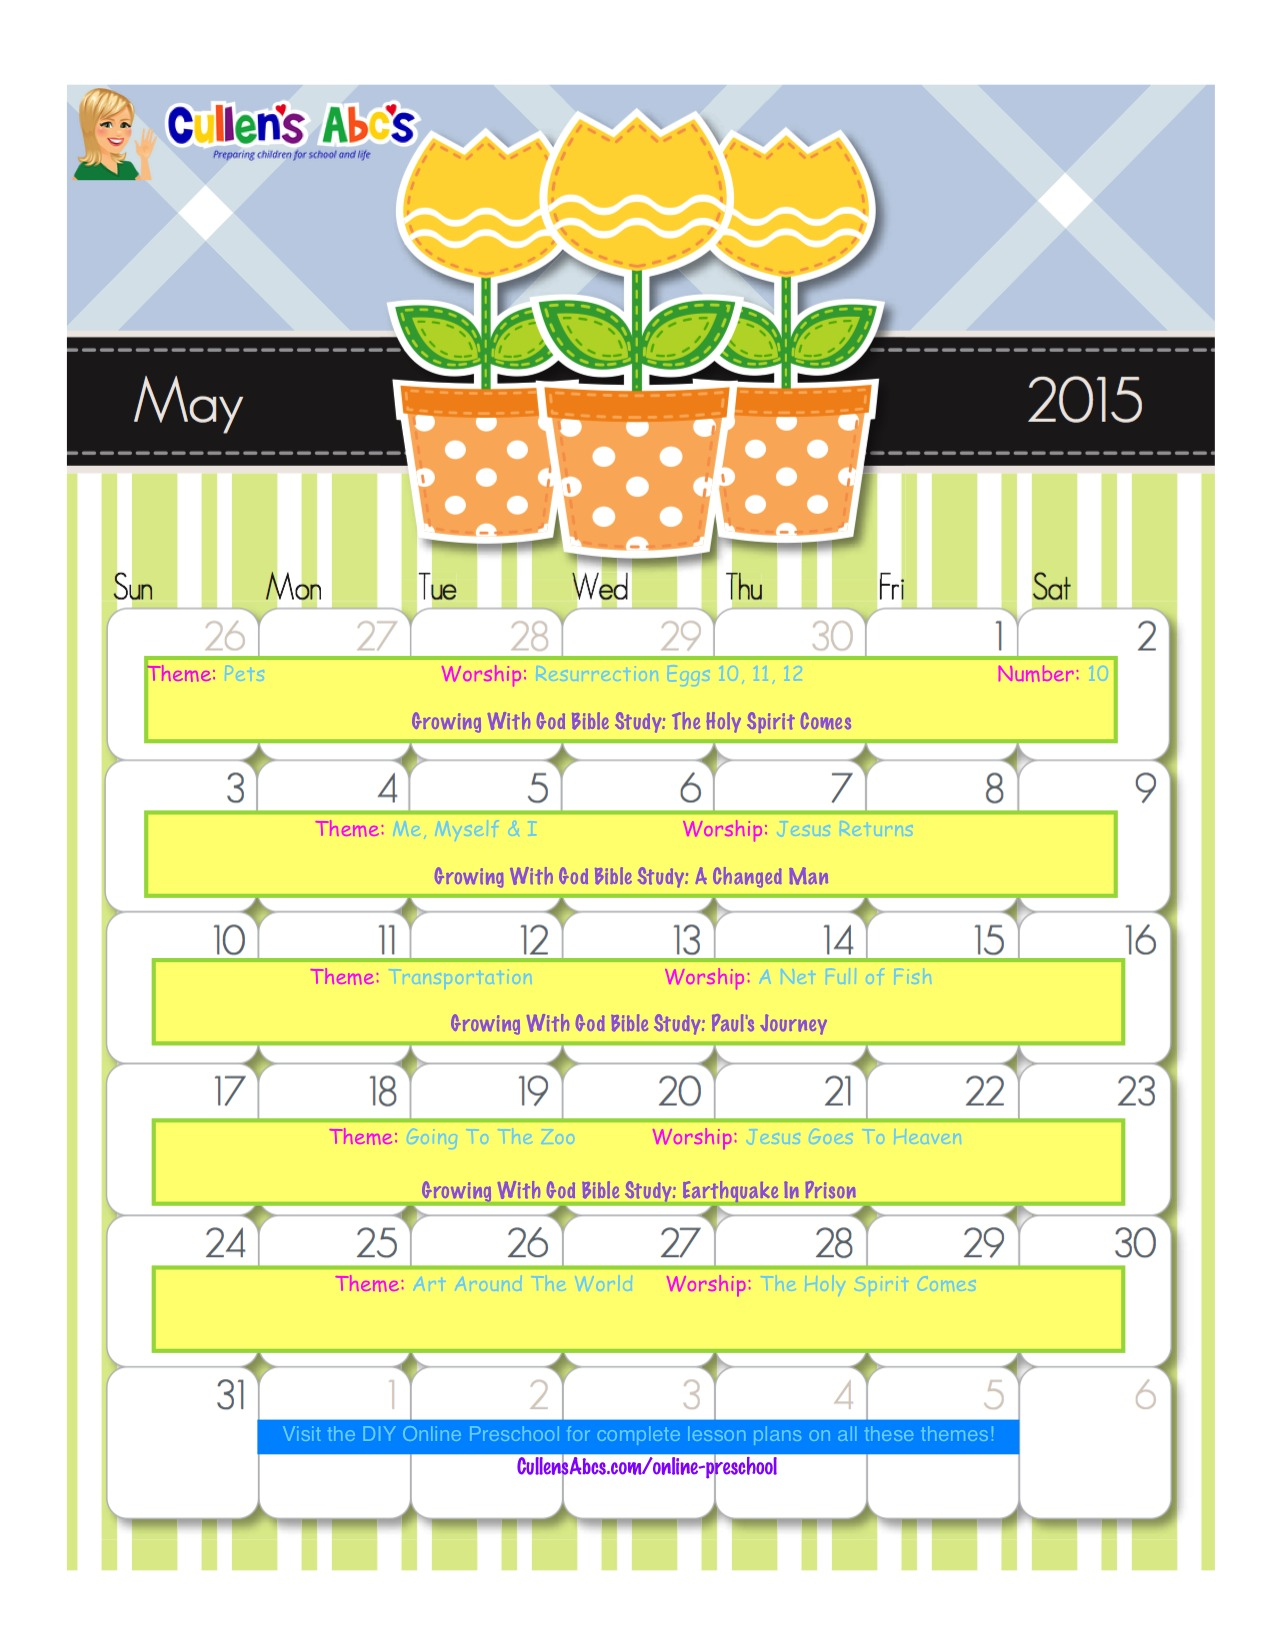 may online preschool calendar 2015